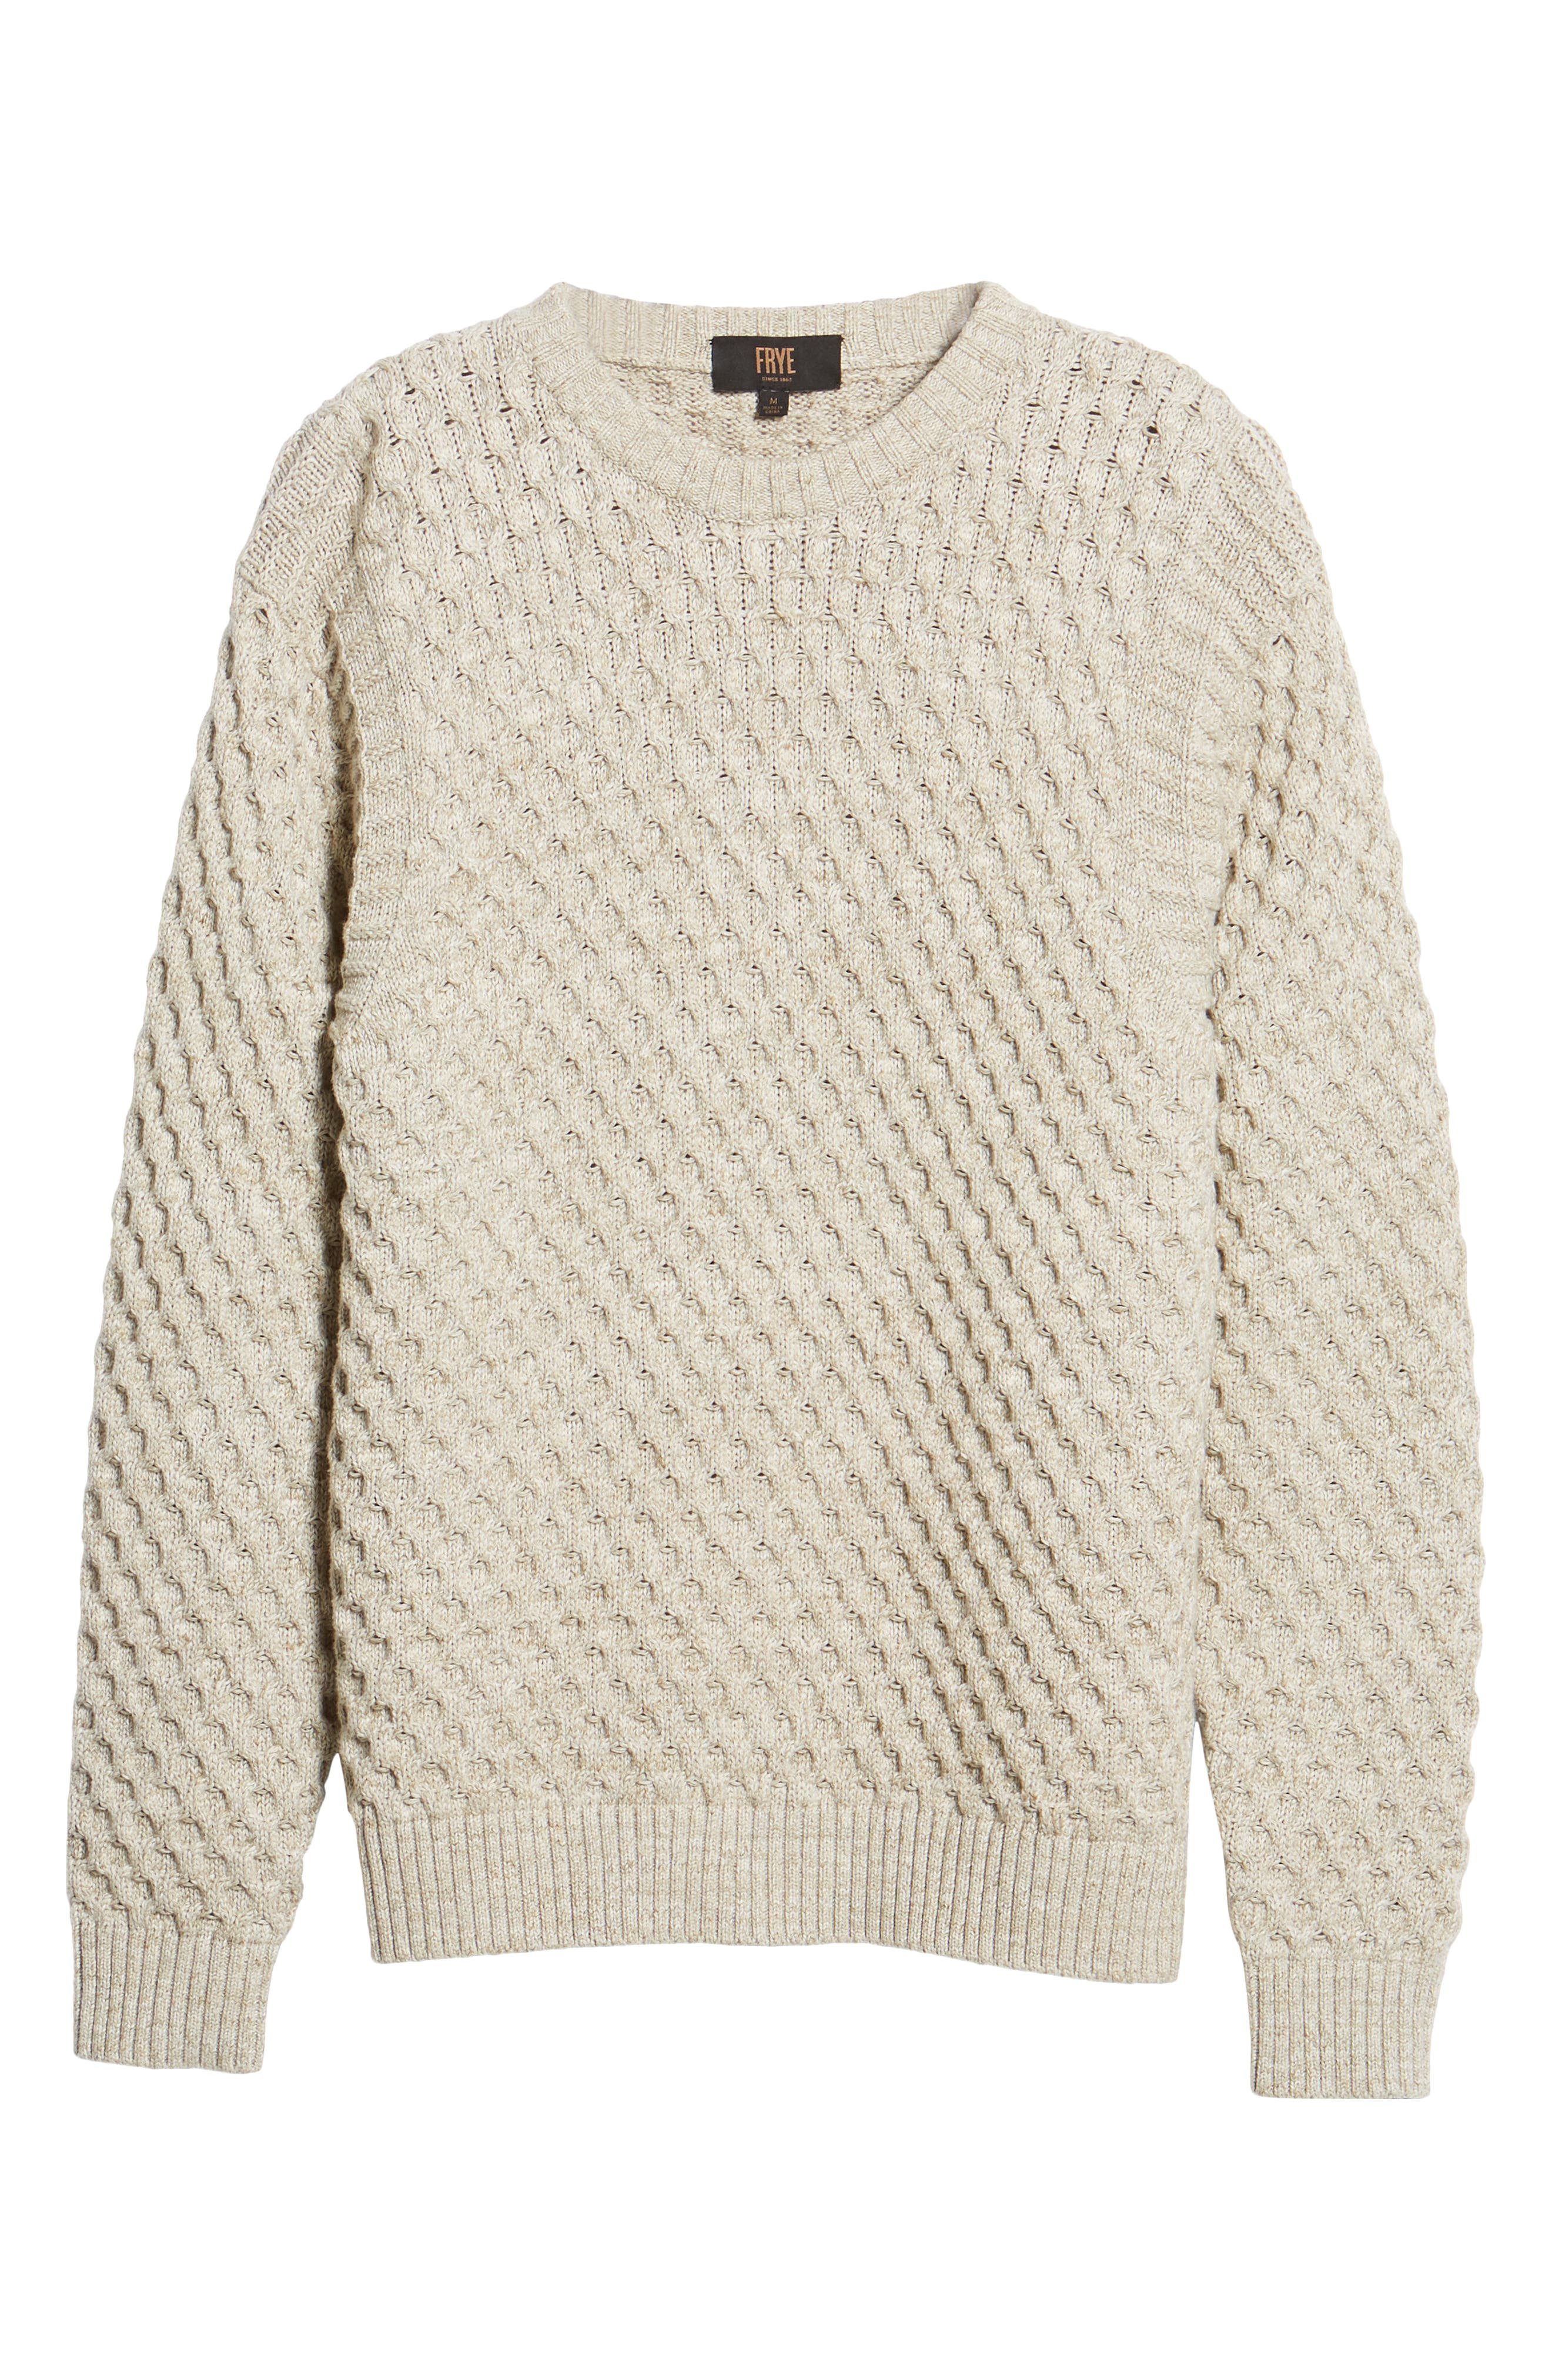 Ethan Fisherman Cable Sweater,                             Alternate thumbnail 6, color,                             CREAM